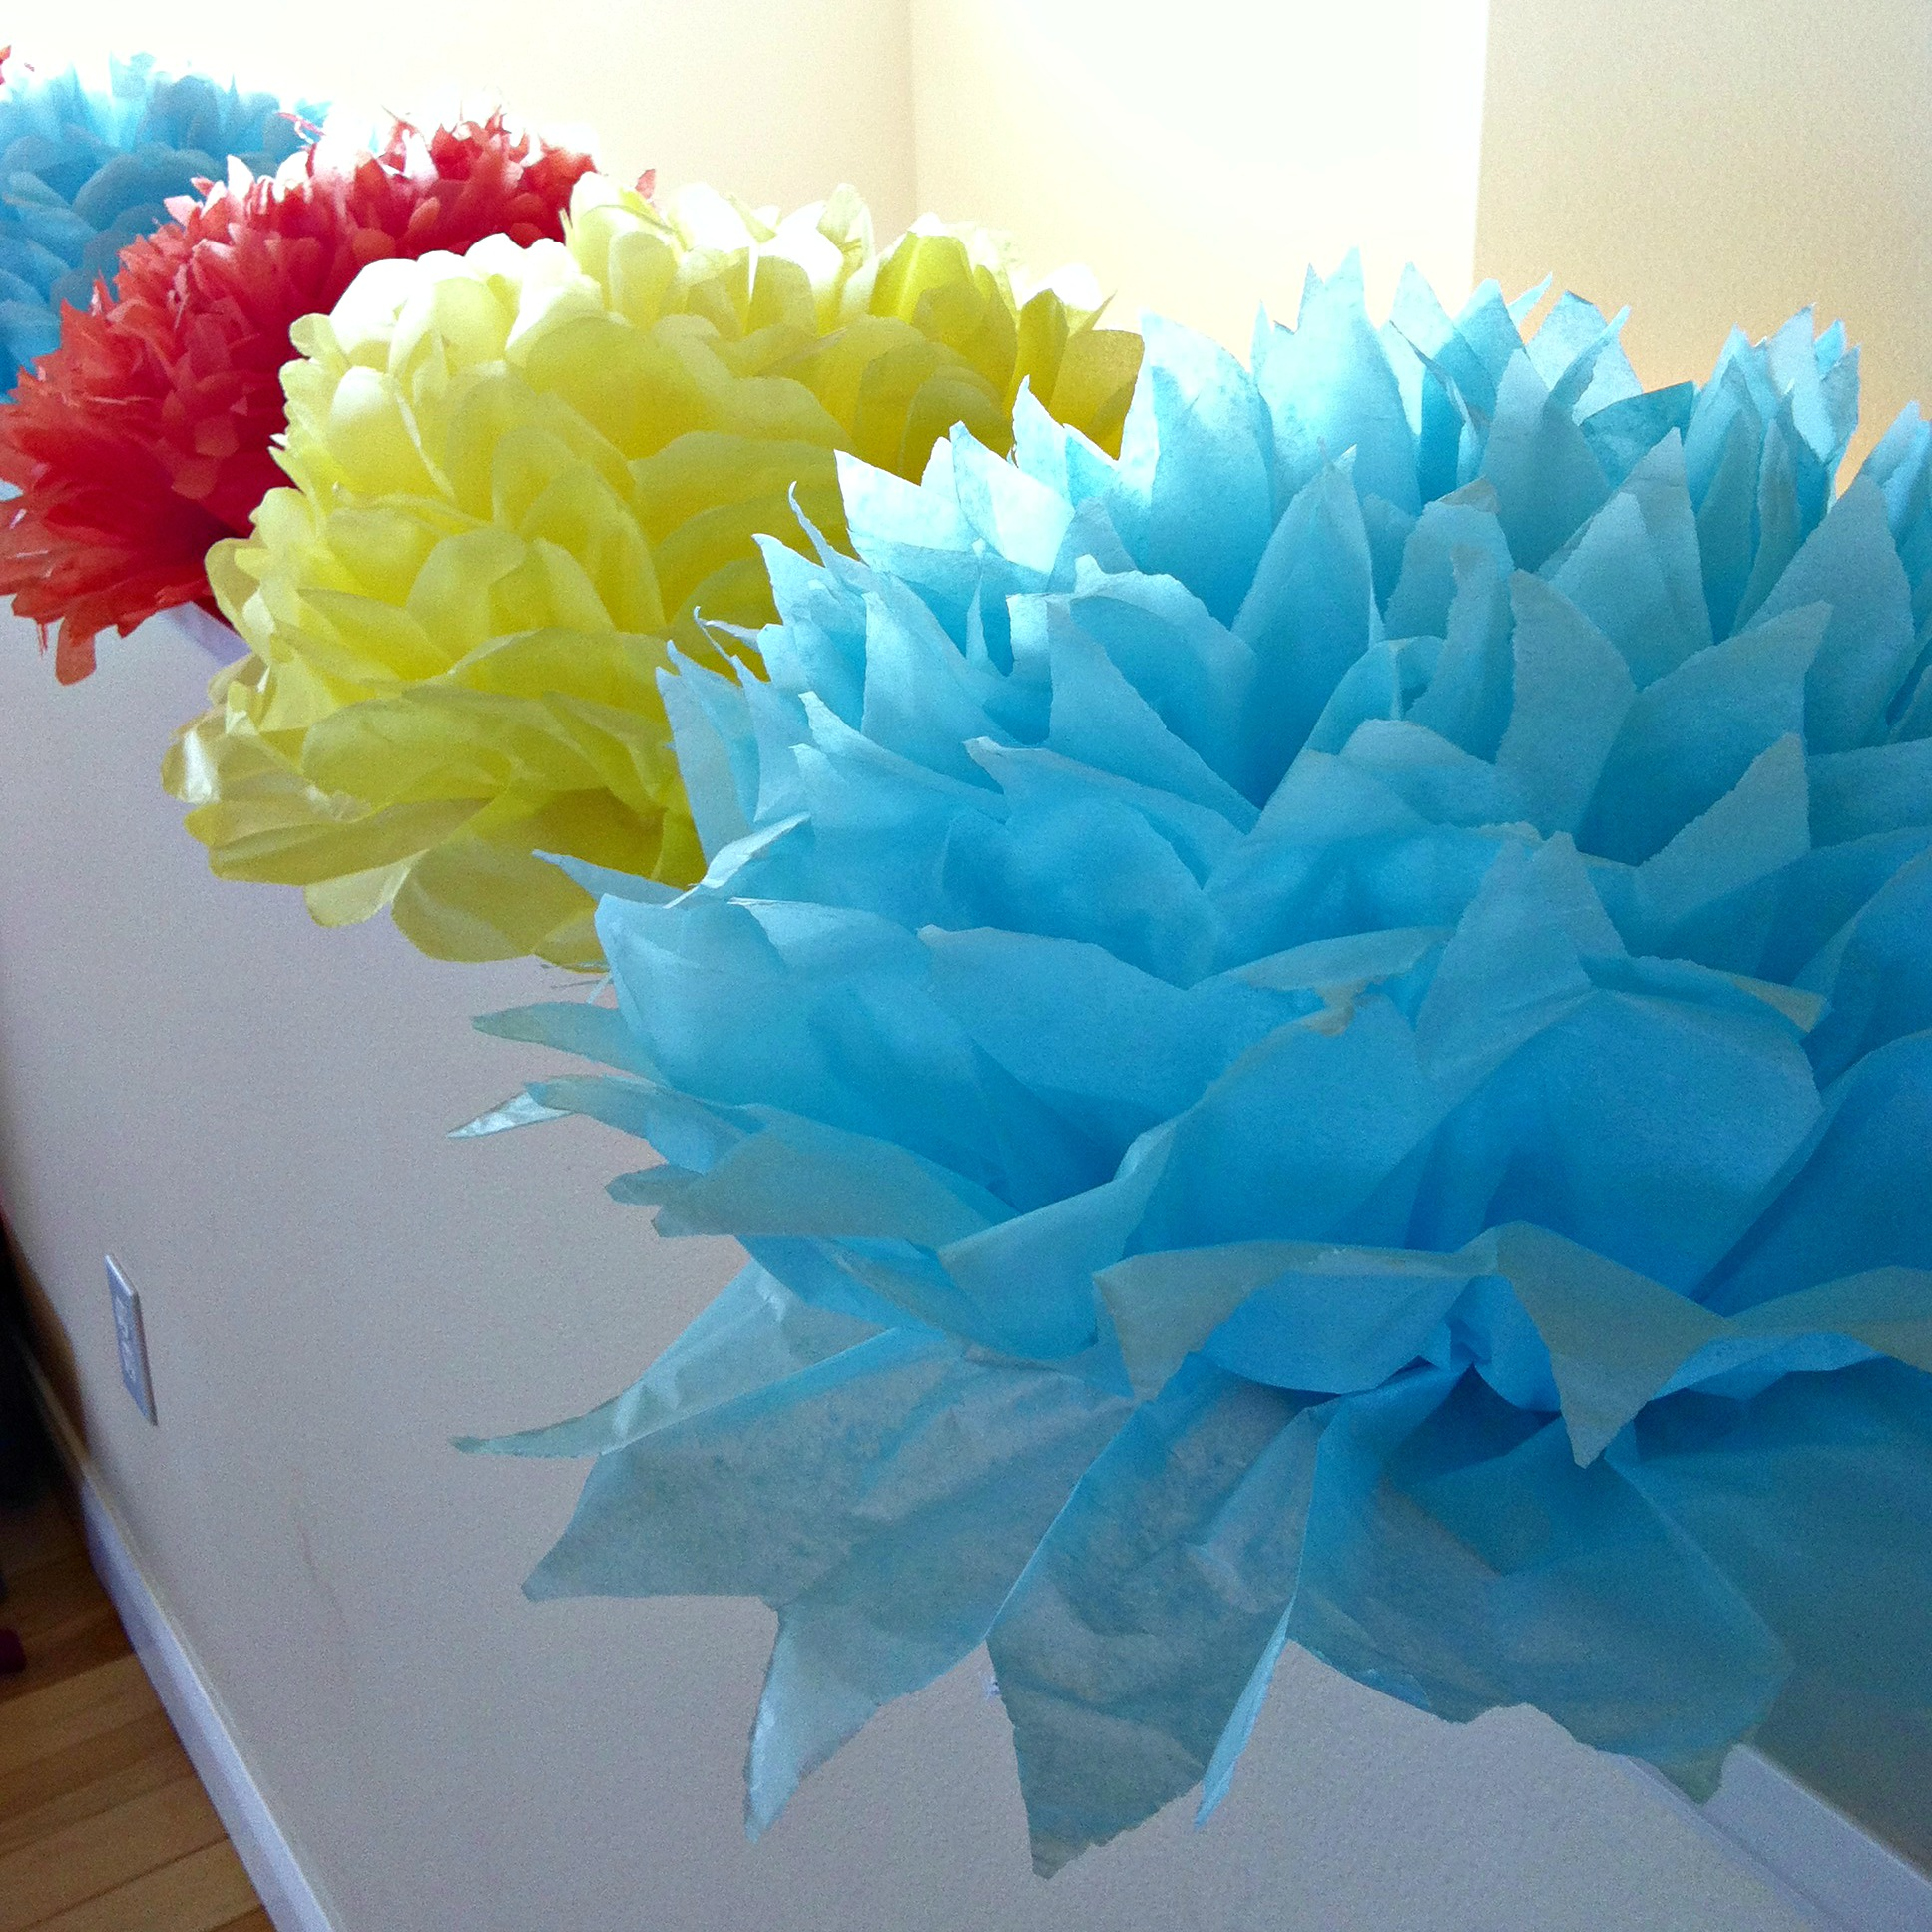 Tutorial how to make diy giant tissue paper flowers hello diy giant handmade tissue paper flowers tutorial 2 for 100 make beautiful birthday party decorations final mightylinksfo Choice Image